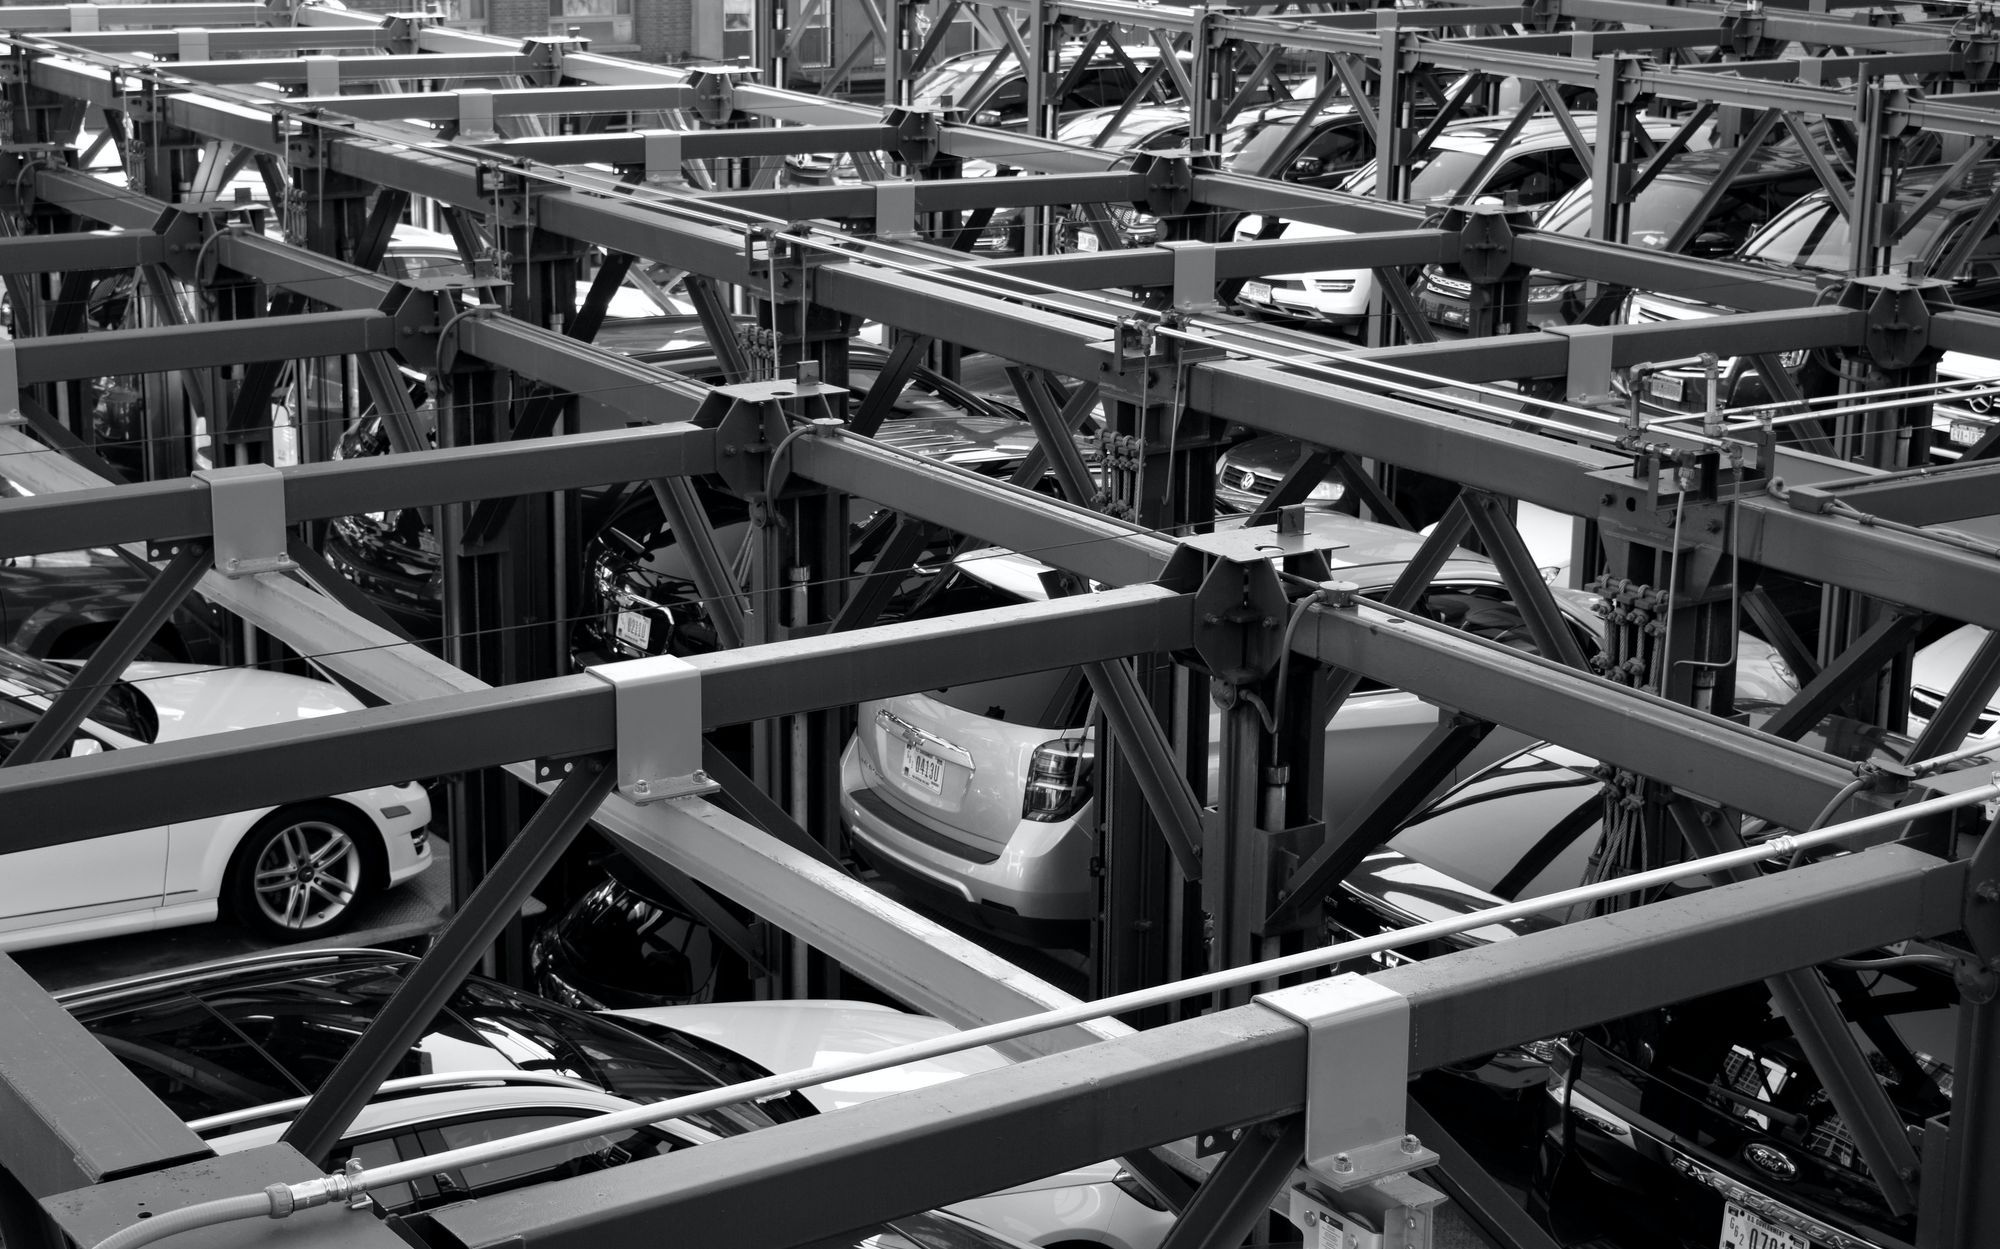 Top angle view of a vehicle assembly line in black and white.